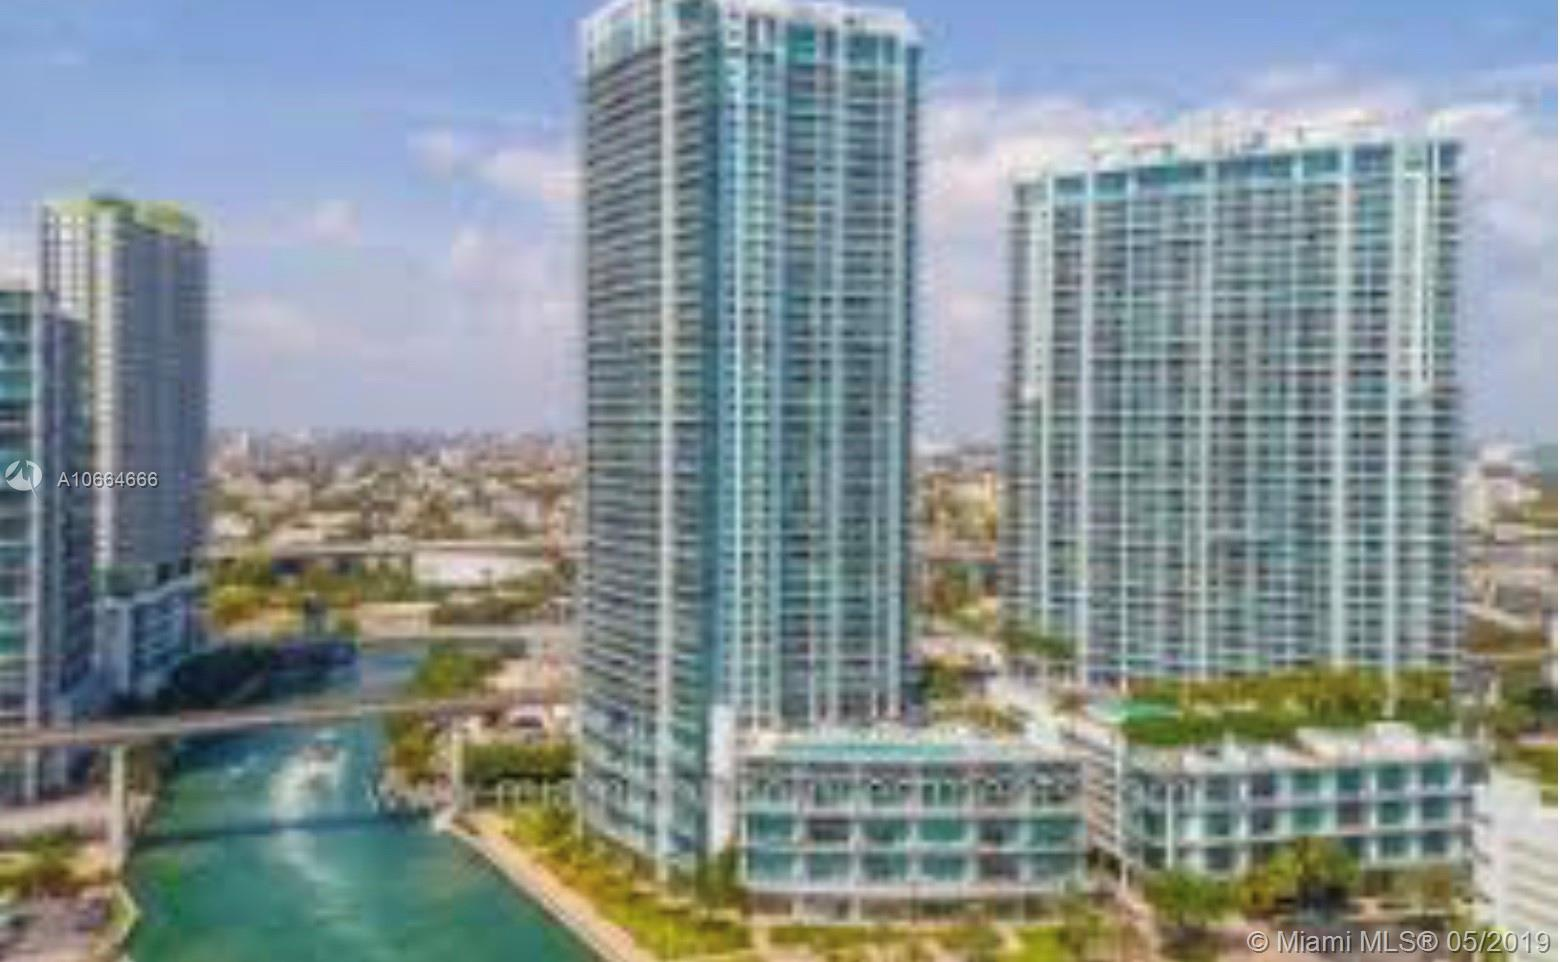 92 SW 3rd St # 2611, Miami, Florida 33130, 2 Bedrooms Bedrooms, ,2 BathroomsBathrooms,Residential,For Sale,92 SW 3rd St # 2611,A10664666